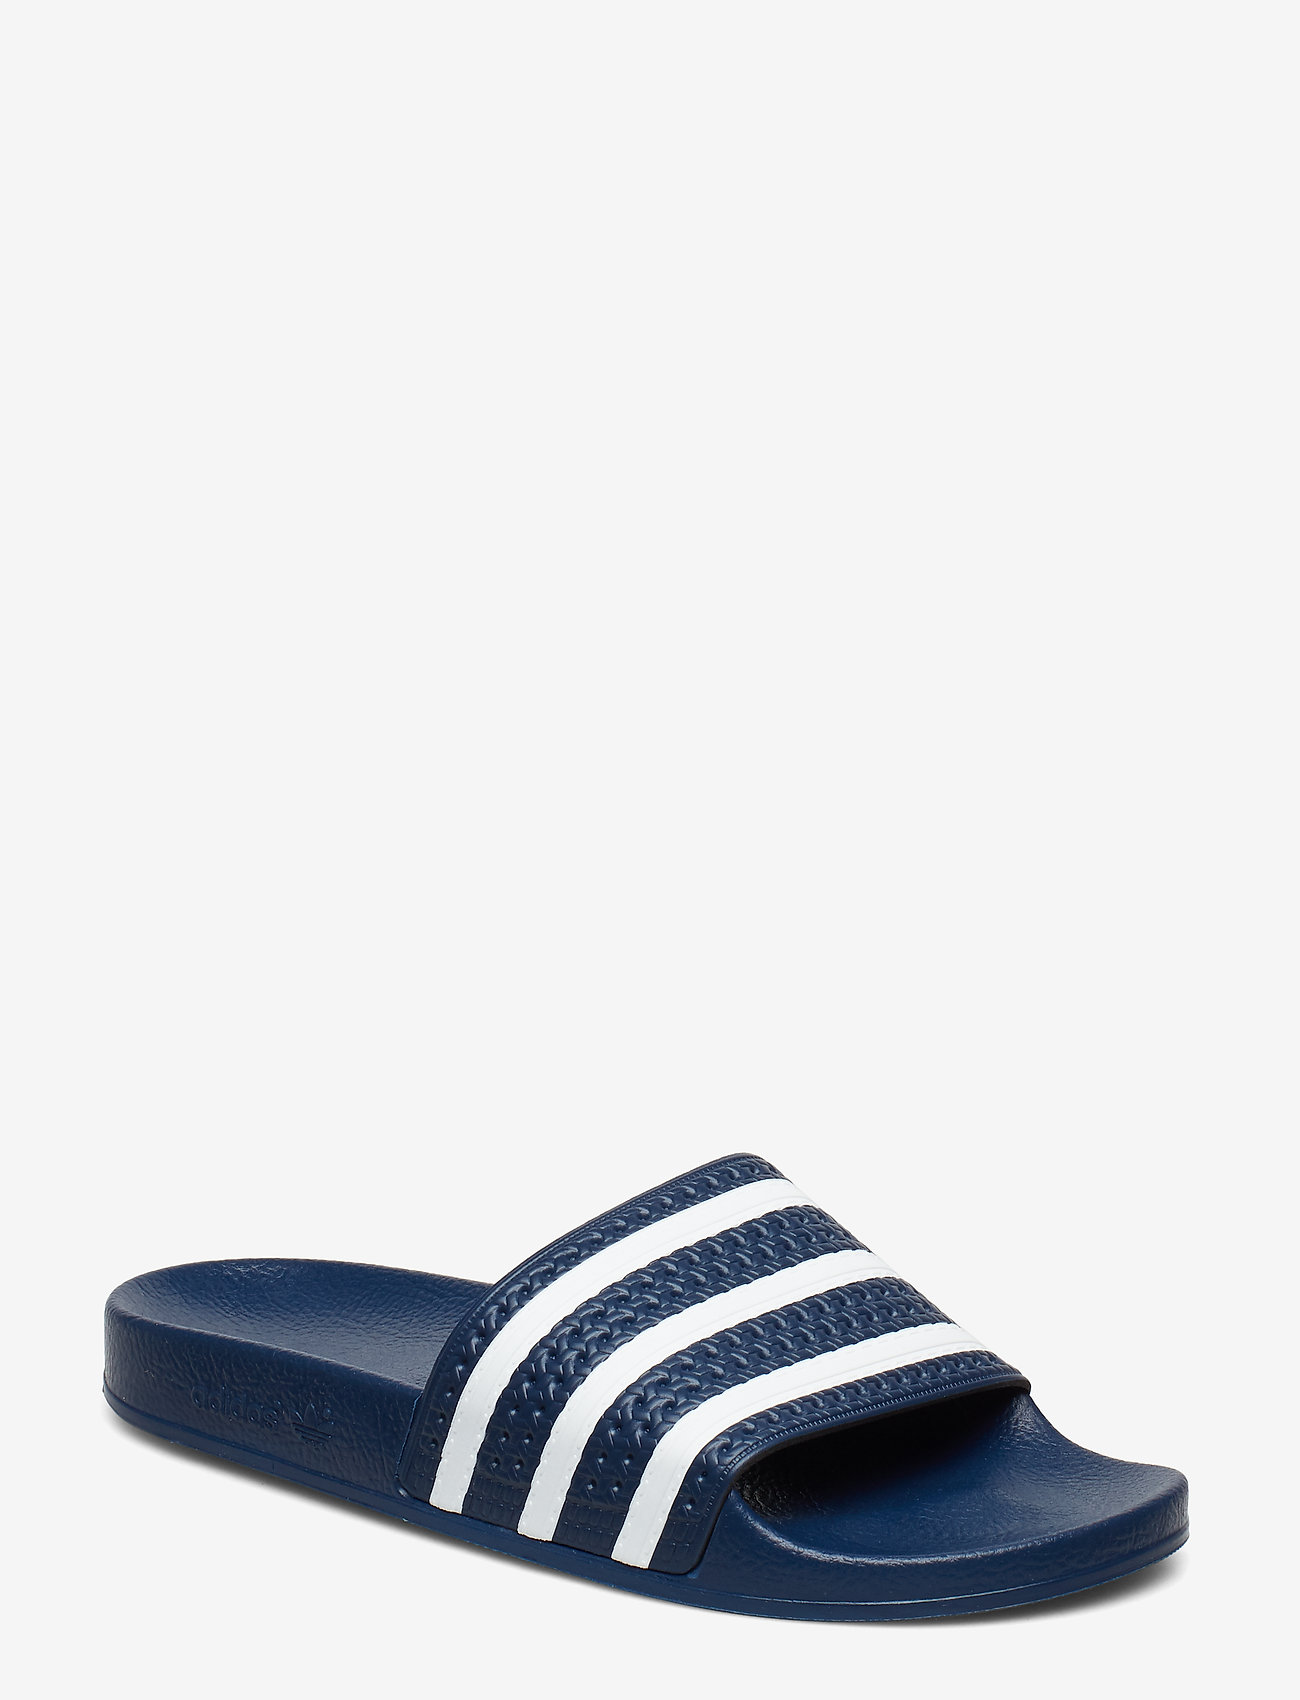 adidas Originals - Adilette Slides - tennarit - adiblu/white/adiblu - 0